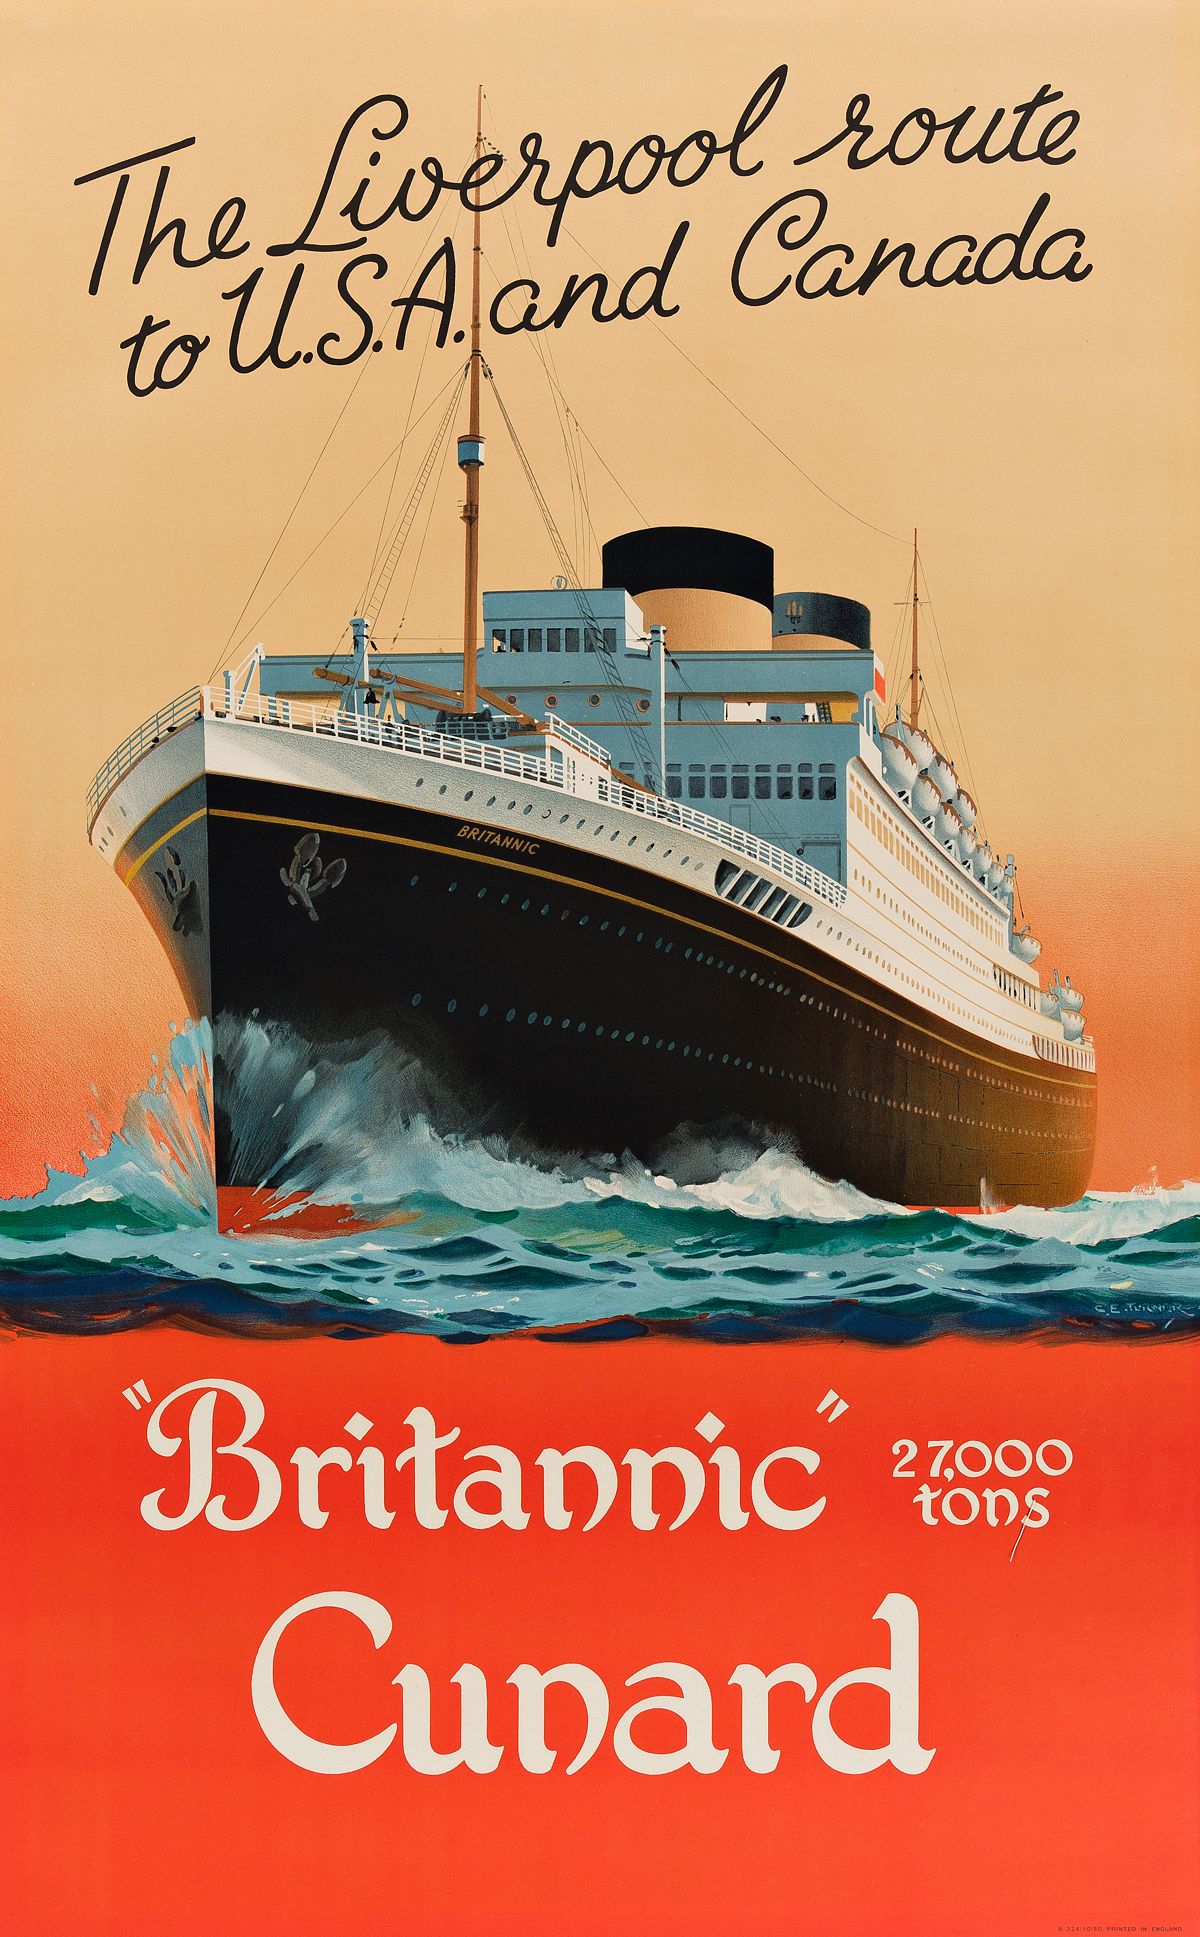 CHARLES-E-TURNER-(1883-1965)-BRITANNIC-CUNARD--THE-LIVERPOOL-ROUTE-TO-USA-AND-CANADA-Circa-1950-38x24-inches-98x61-cm